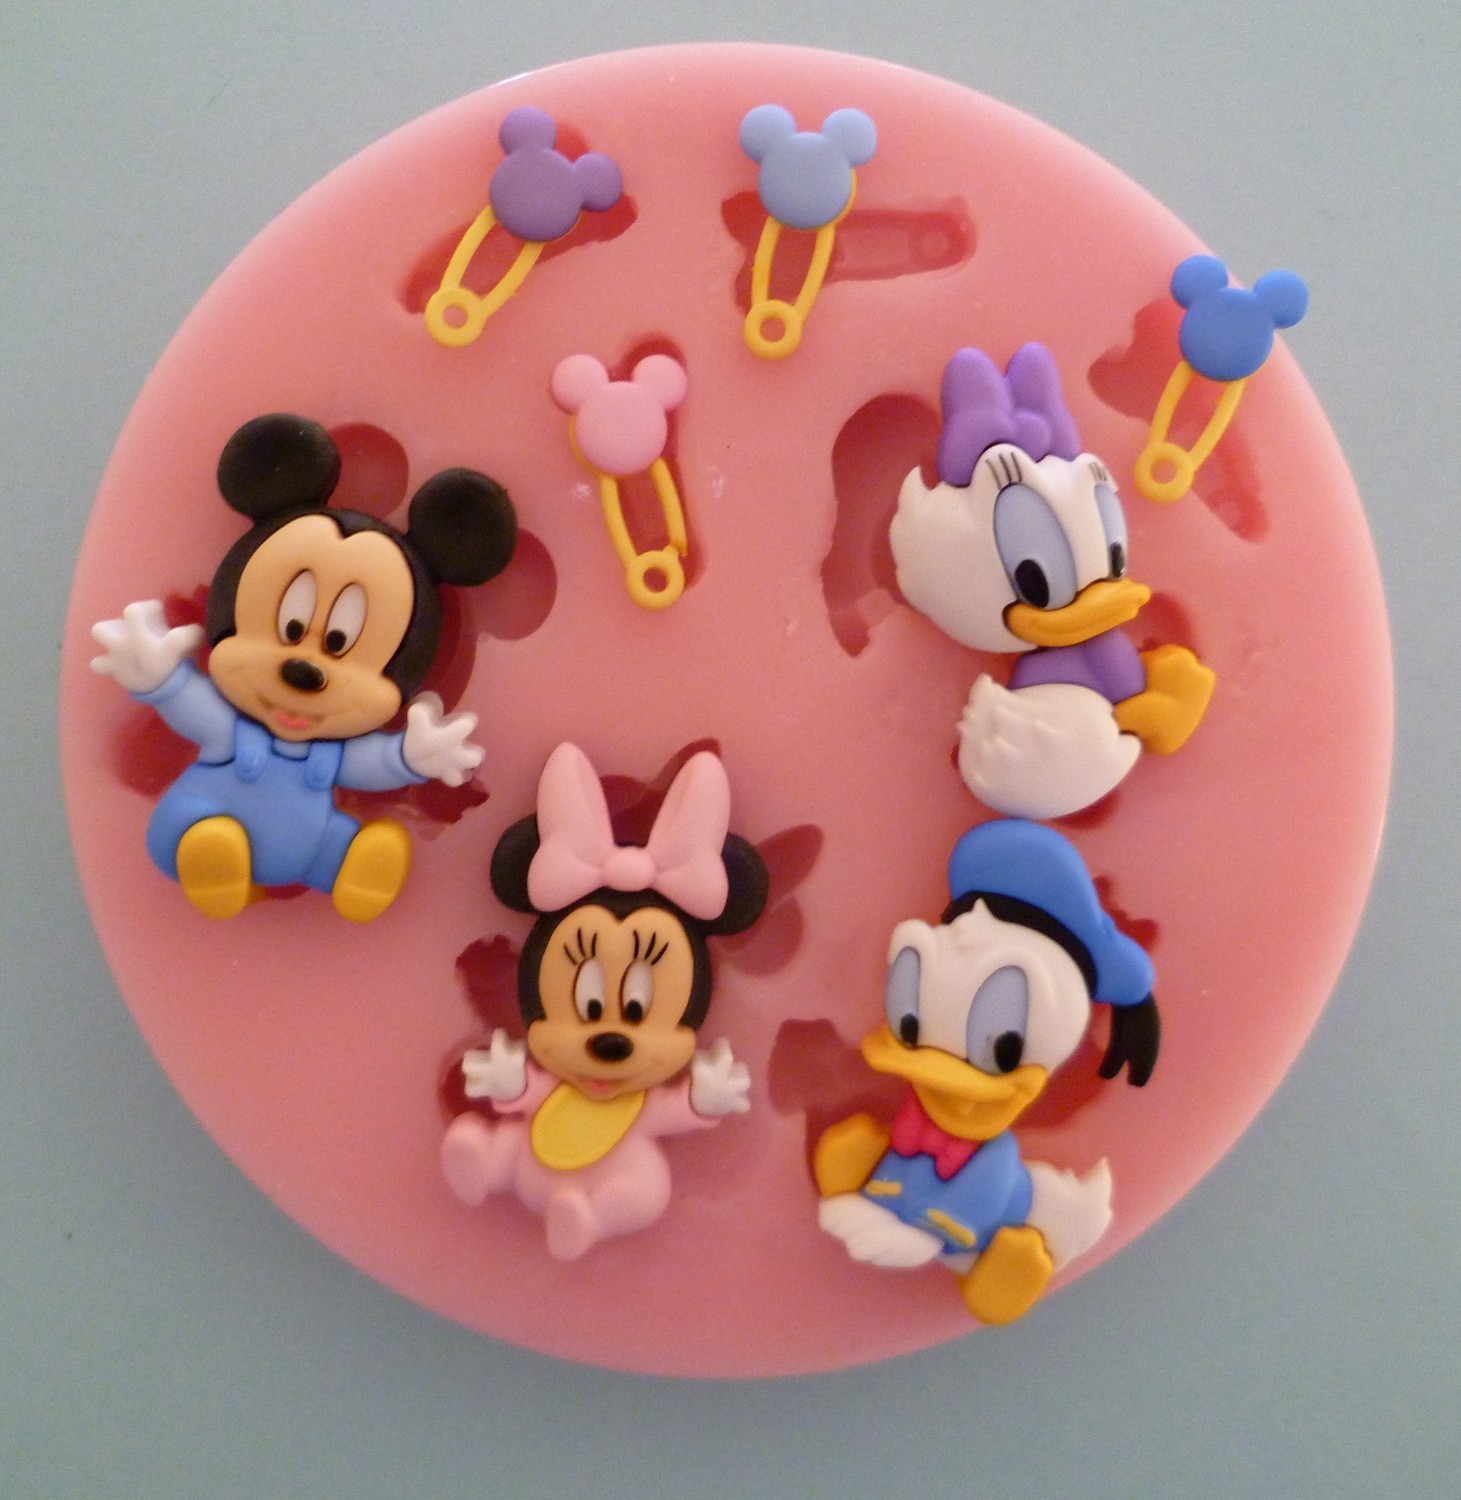 BABY DISNEY CHARACTERS SILICONE MOULD